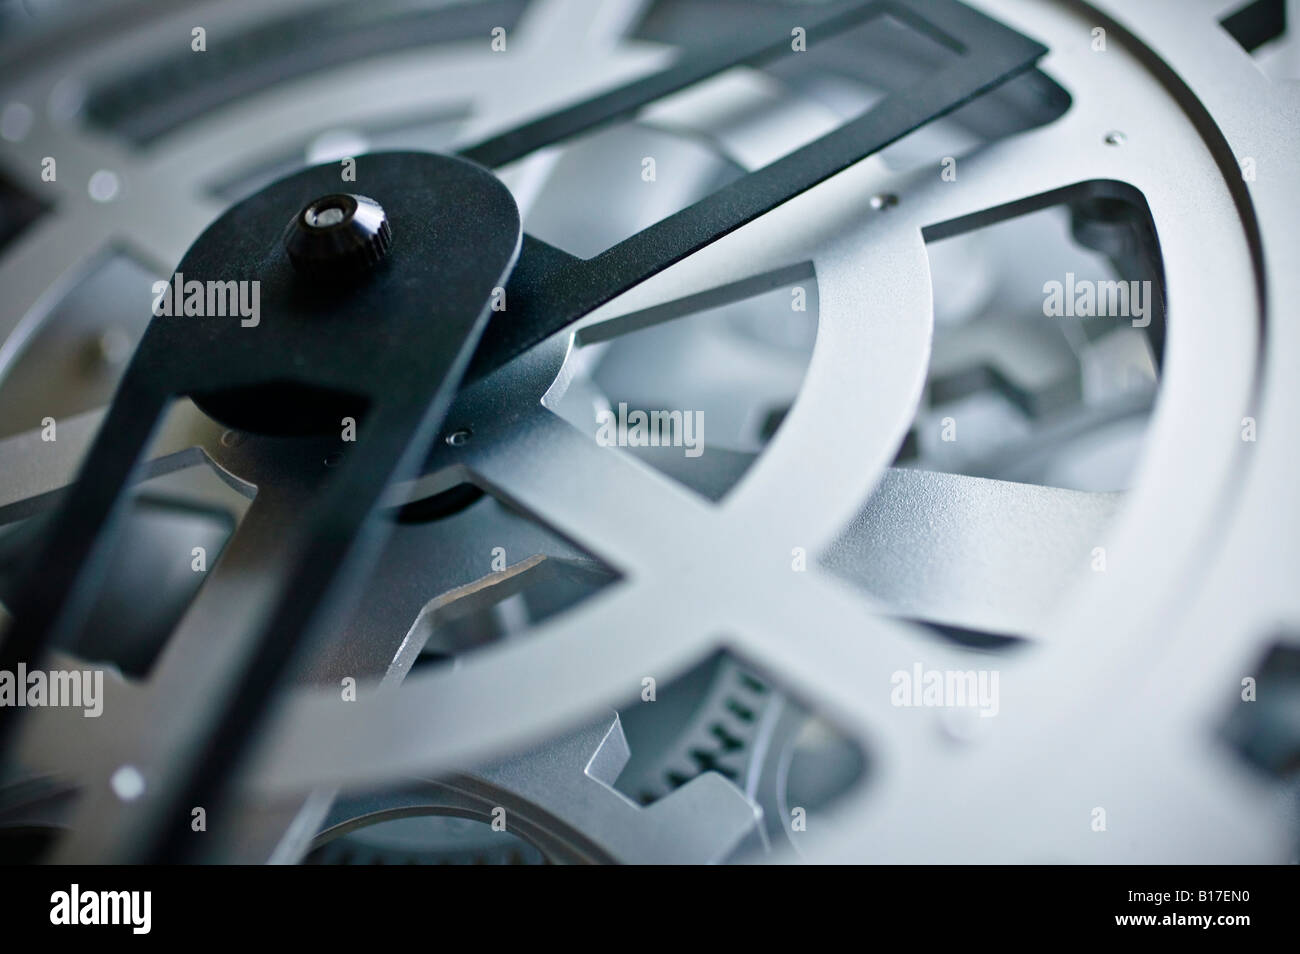 Clock and gears - Stock Image